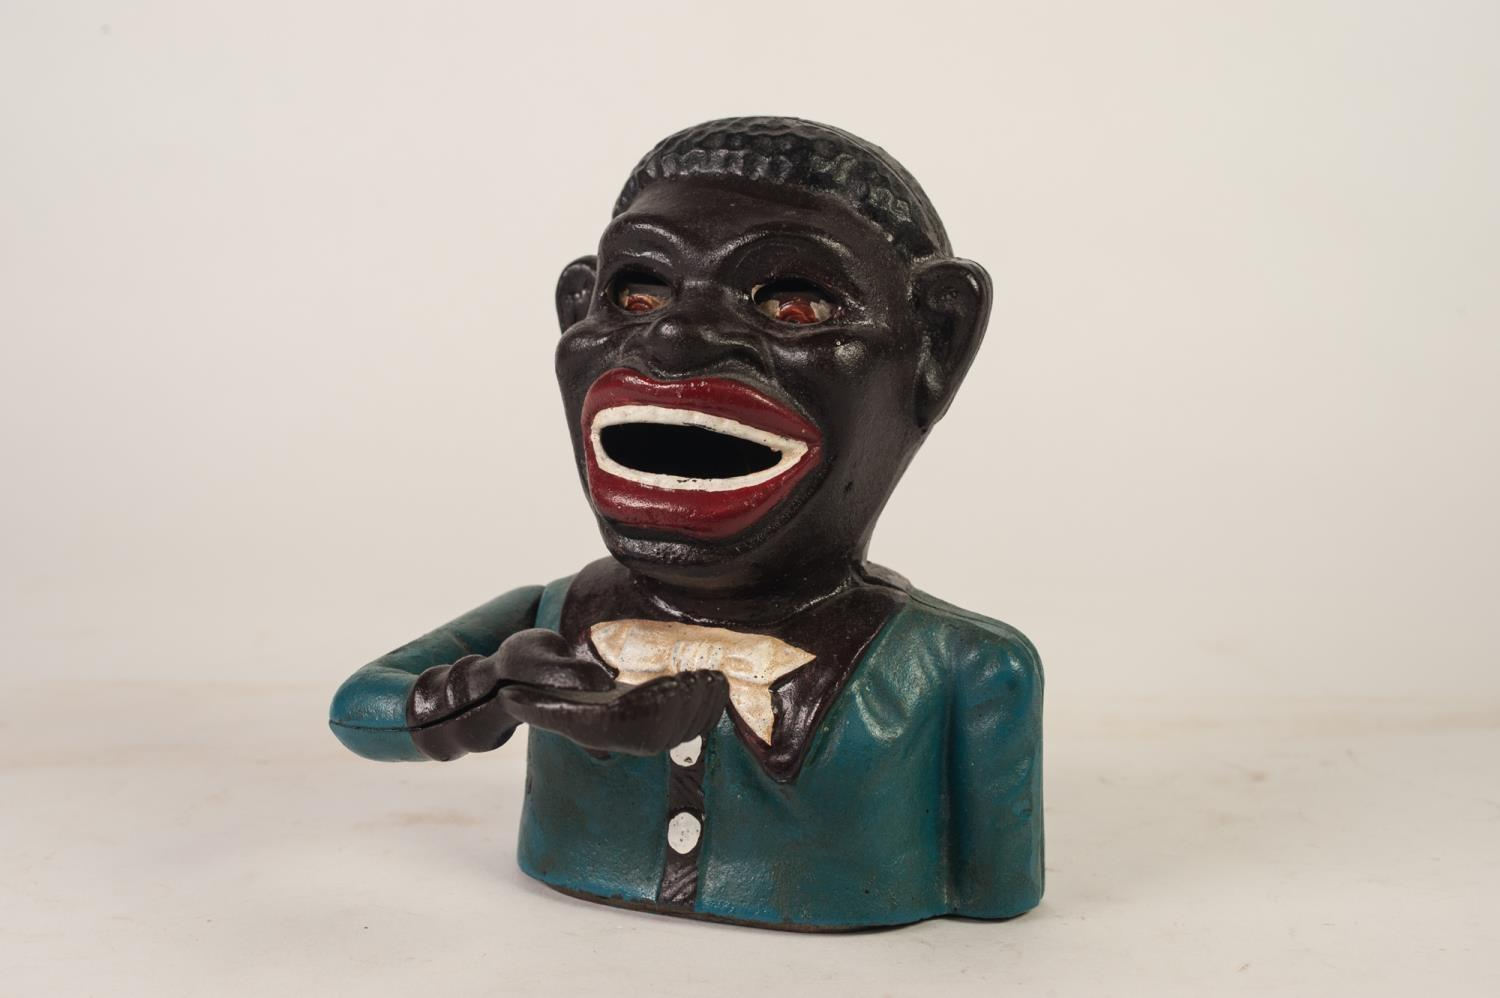 Lot 400 - EARLY TWENTIETH CENTURY CAST IRON 'JOLLY' MONEY BANK, of typical form but repainted, the base